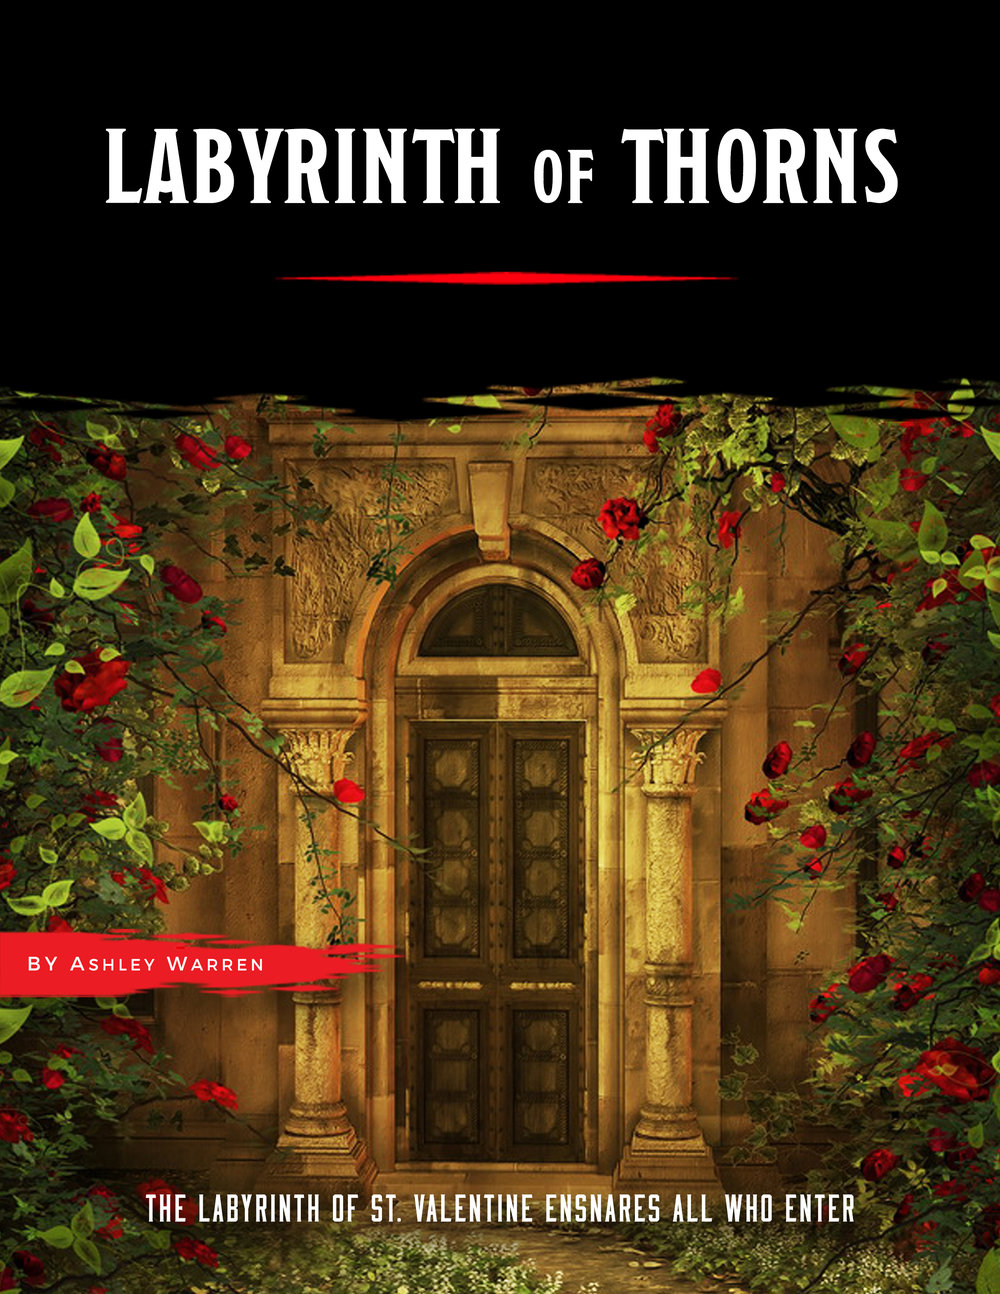 LabyrinthOfThorns.jpg